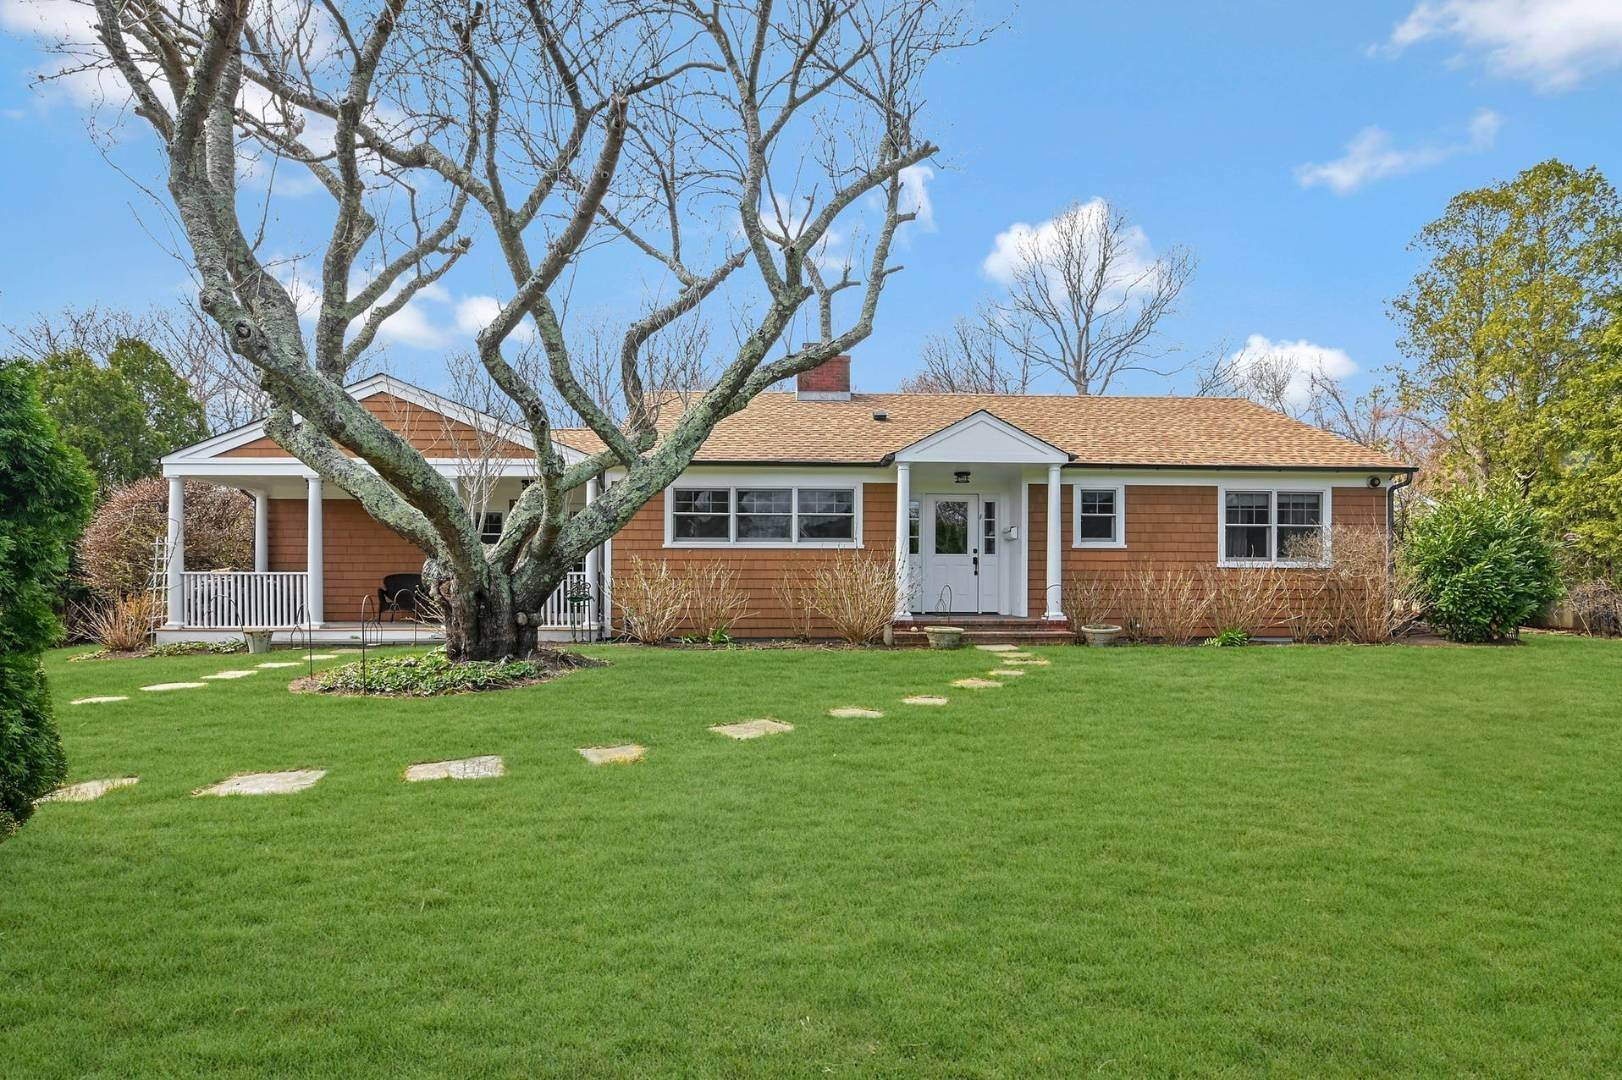 Single Family Home for Sale at Beautifully Renovated In East Hampton East Hampton, NY 11937